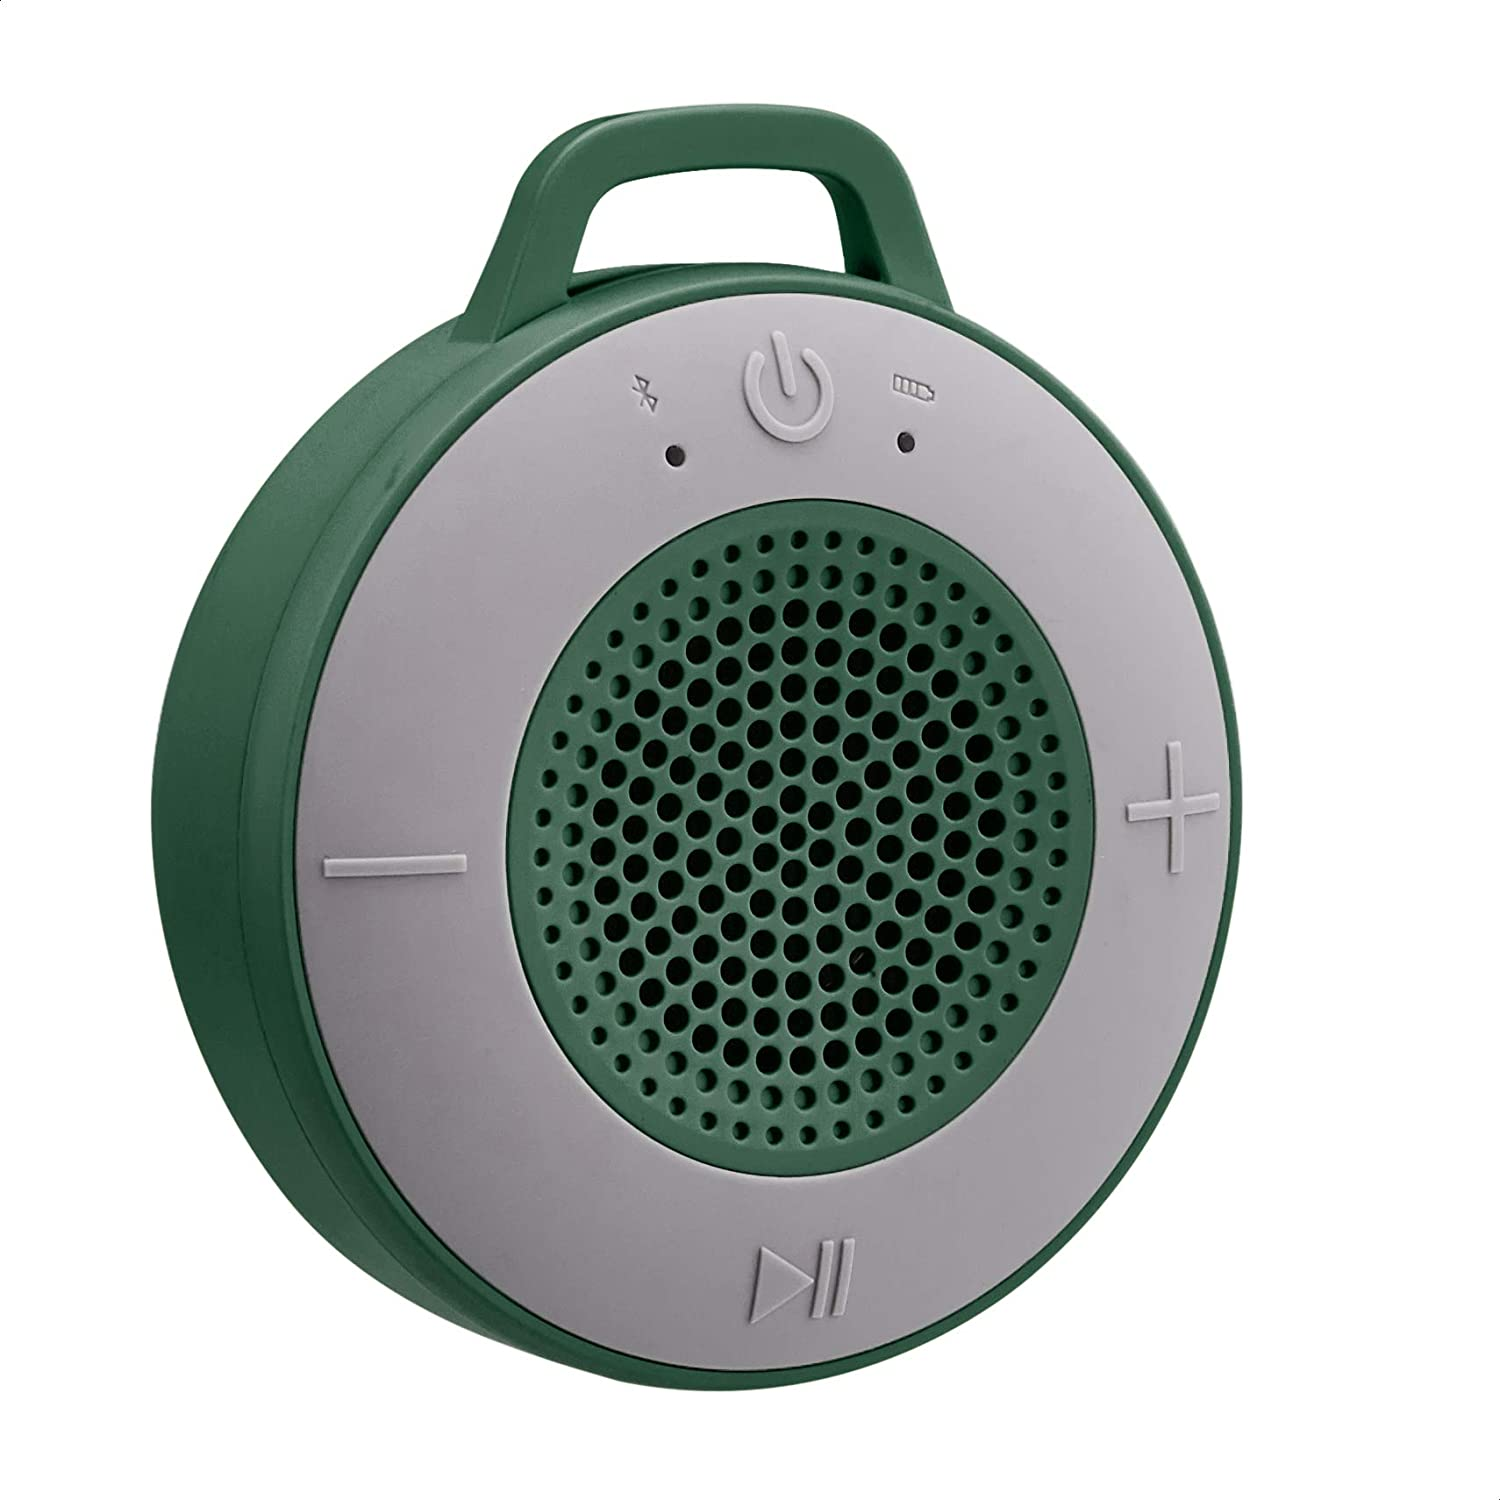 Amazon Basics Wireless Shower Speaker with 5W Driver, Suction Cup, Built-in Mic - Green